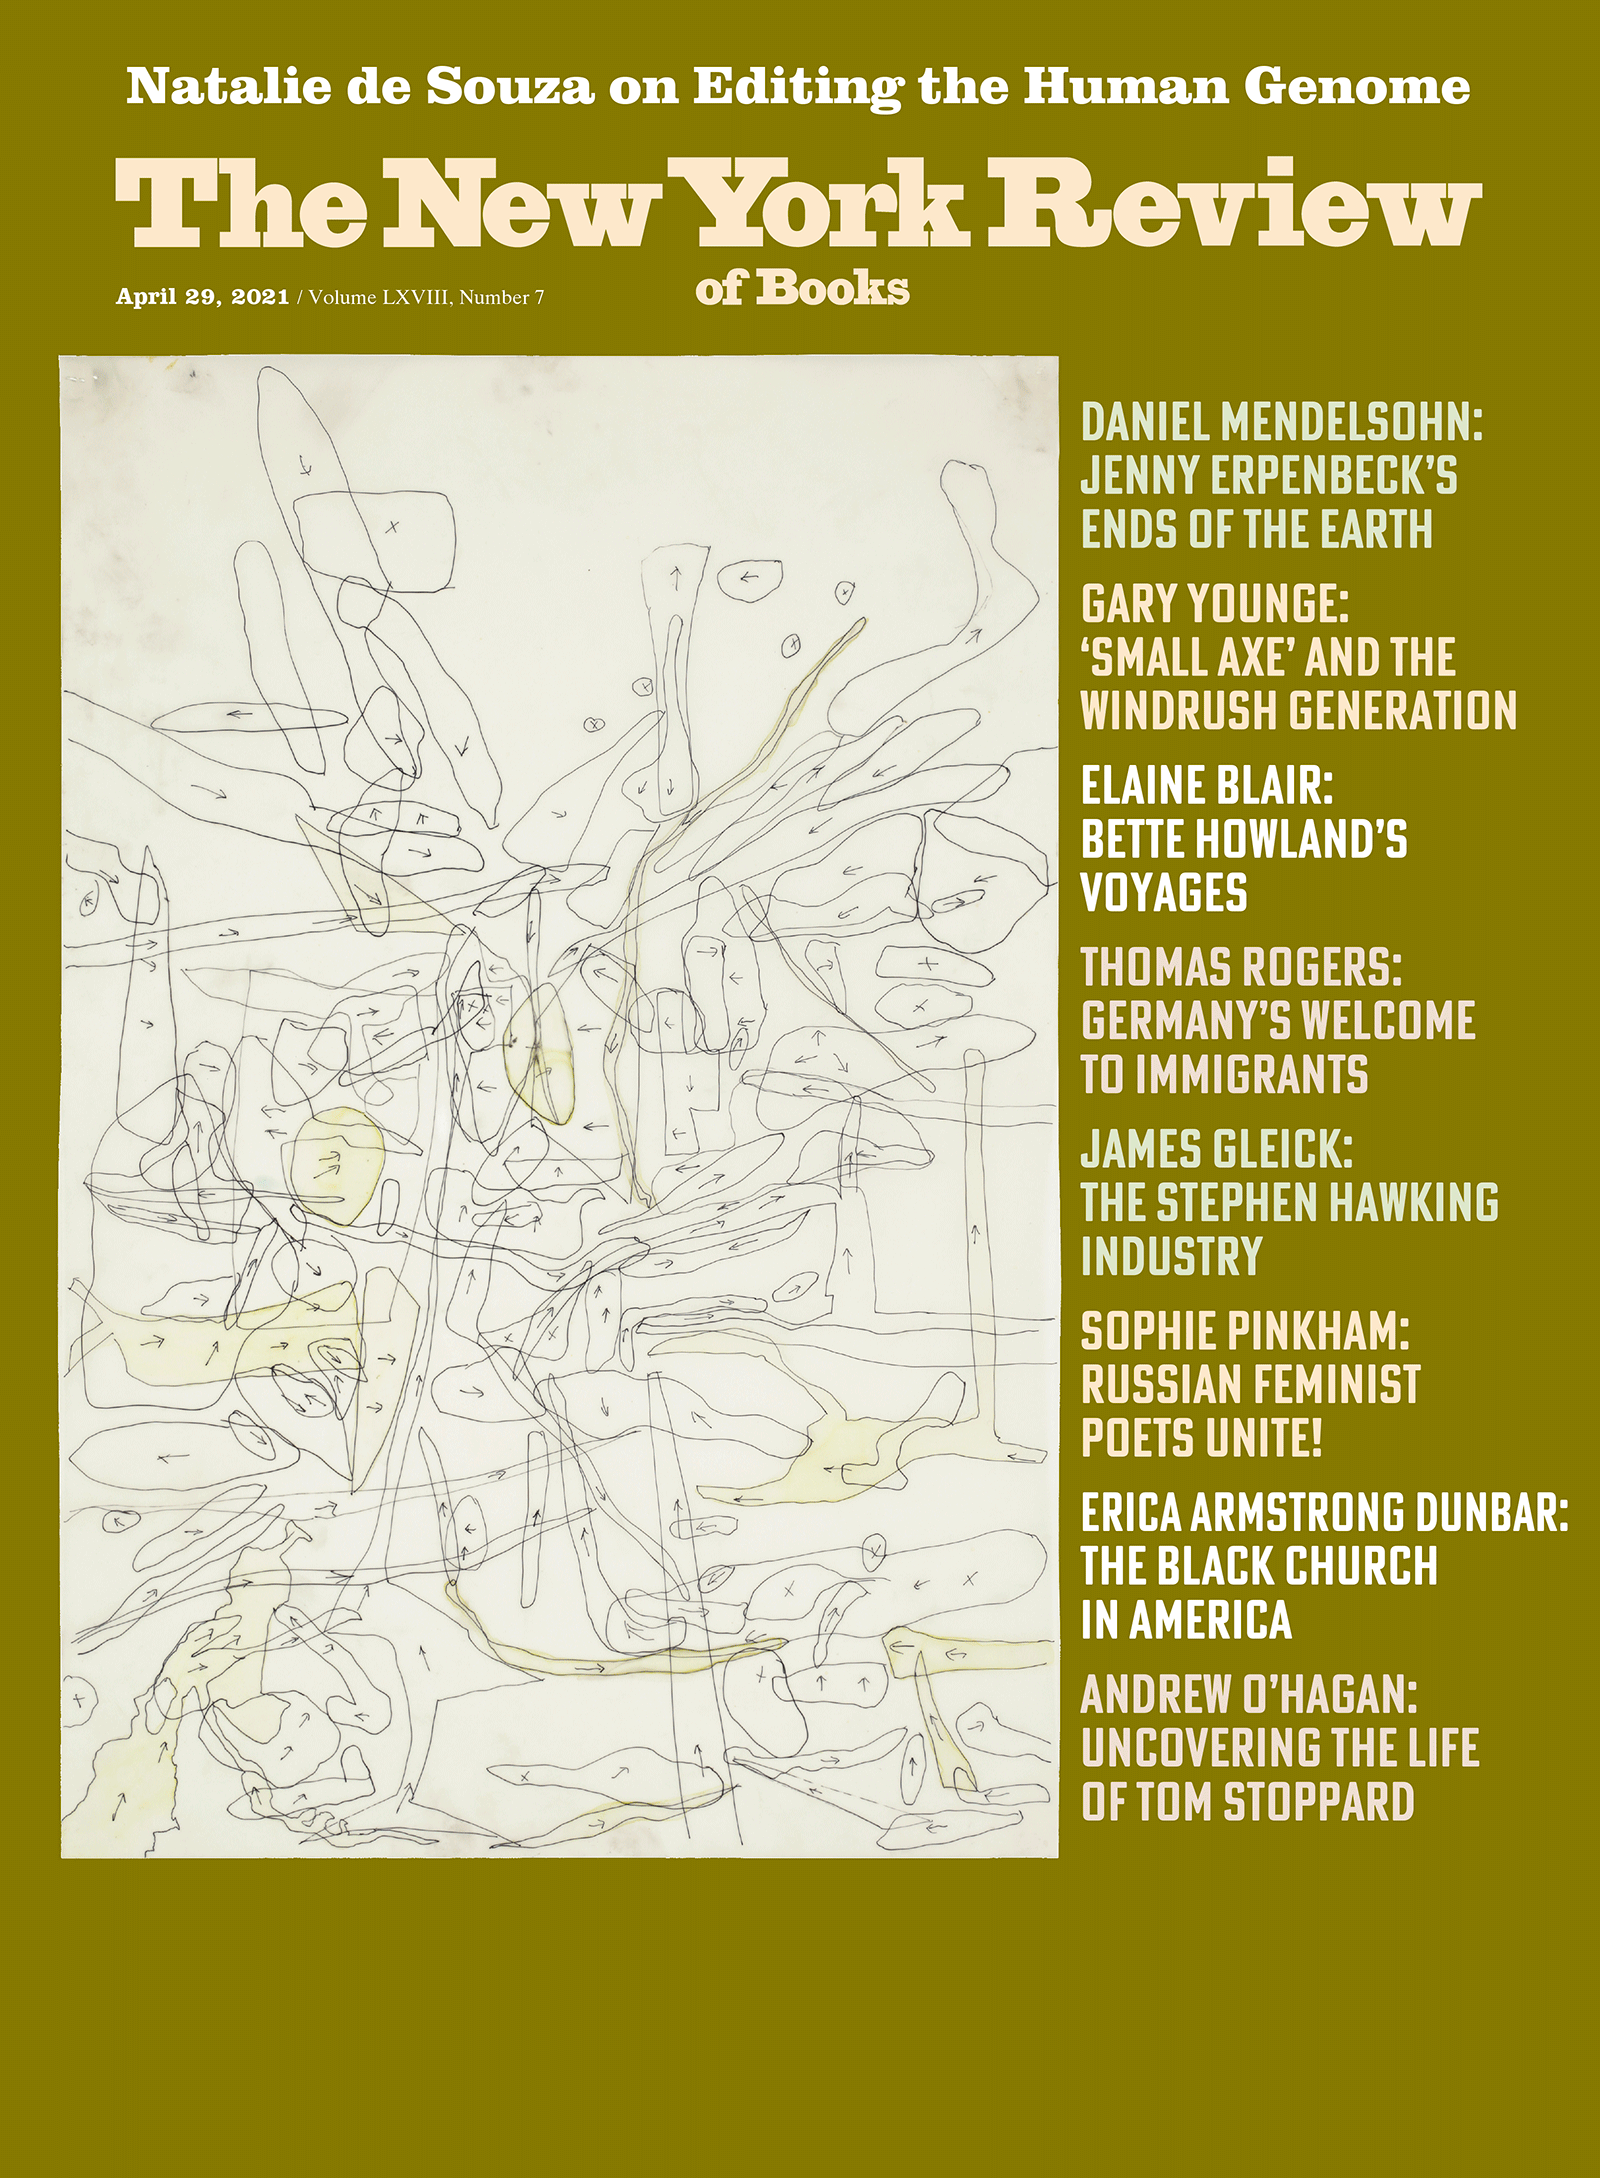 Image of the April 29, 2021 issue cover.